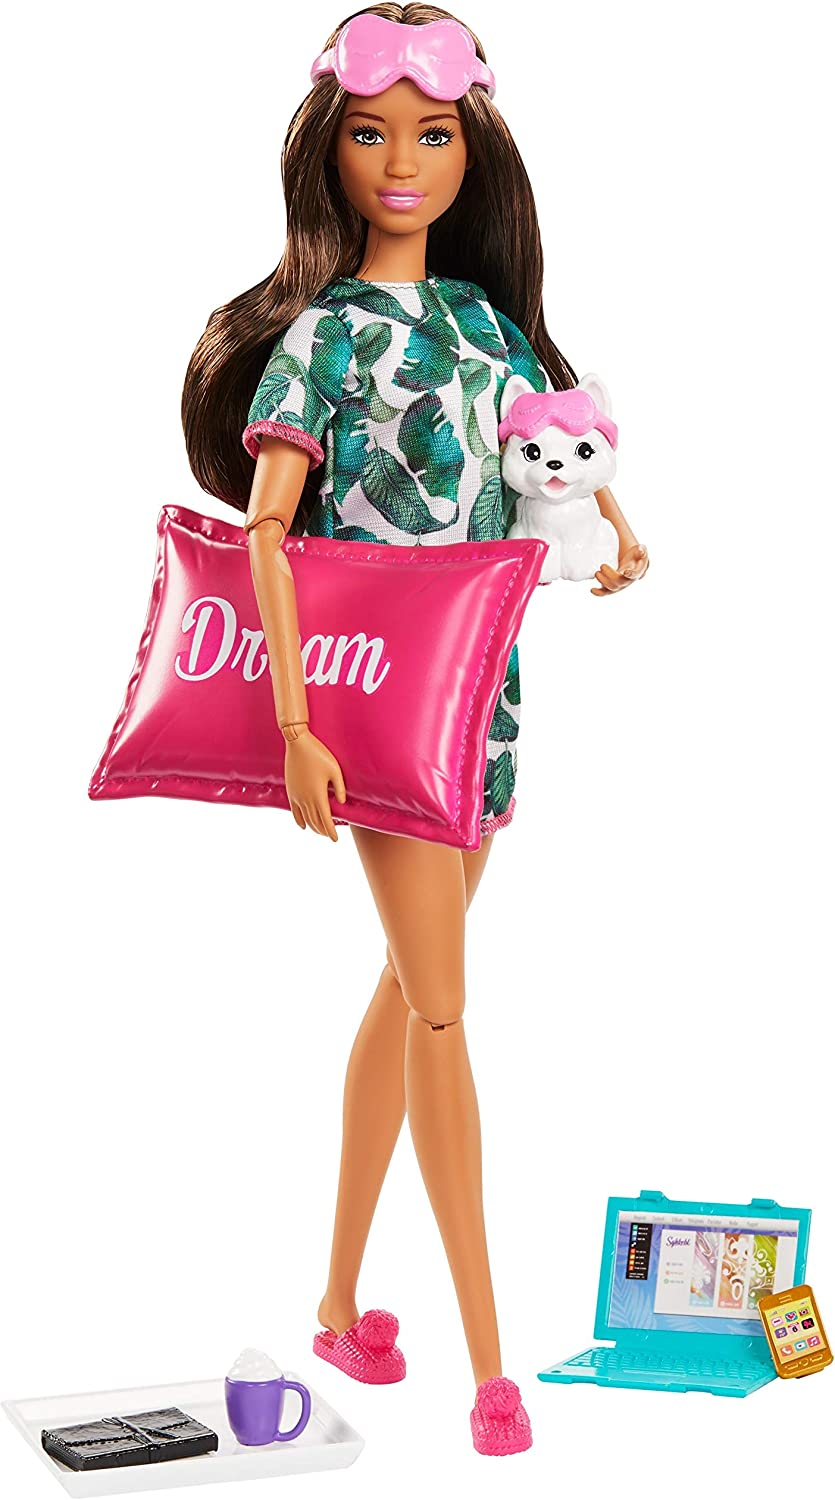 Amazon.com: Barbie Relaxation Doll, Brunette, with Puppy and 8 Accessories,  Including Pillow, Journal and Sleep Masks, Gift for Kids 3 to 7 Years Old:  Toys & Games